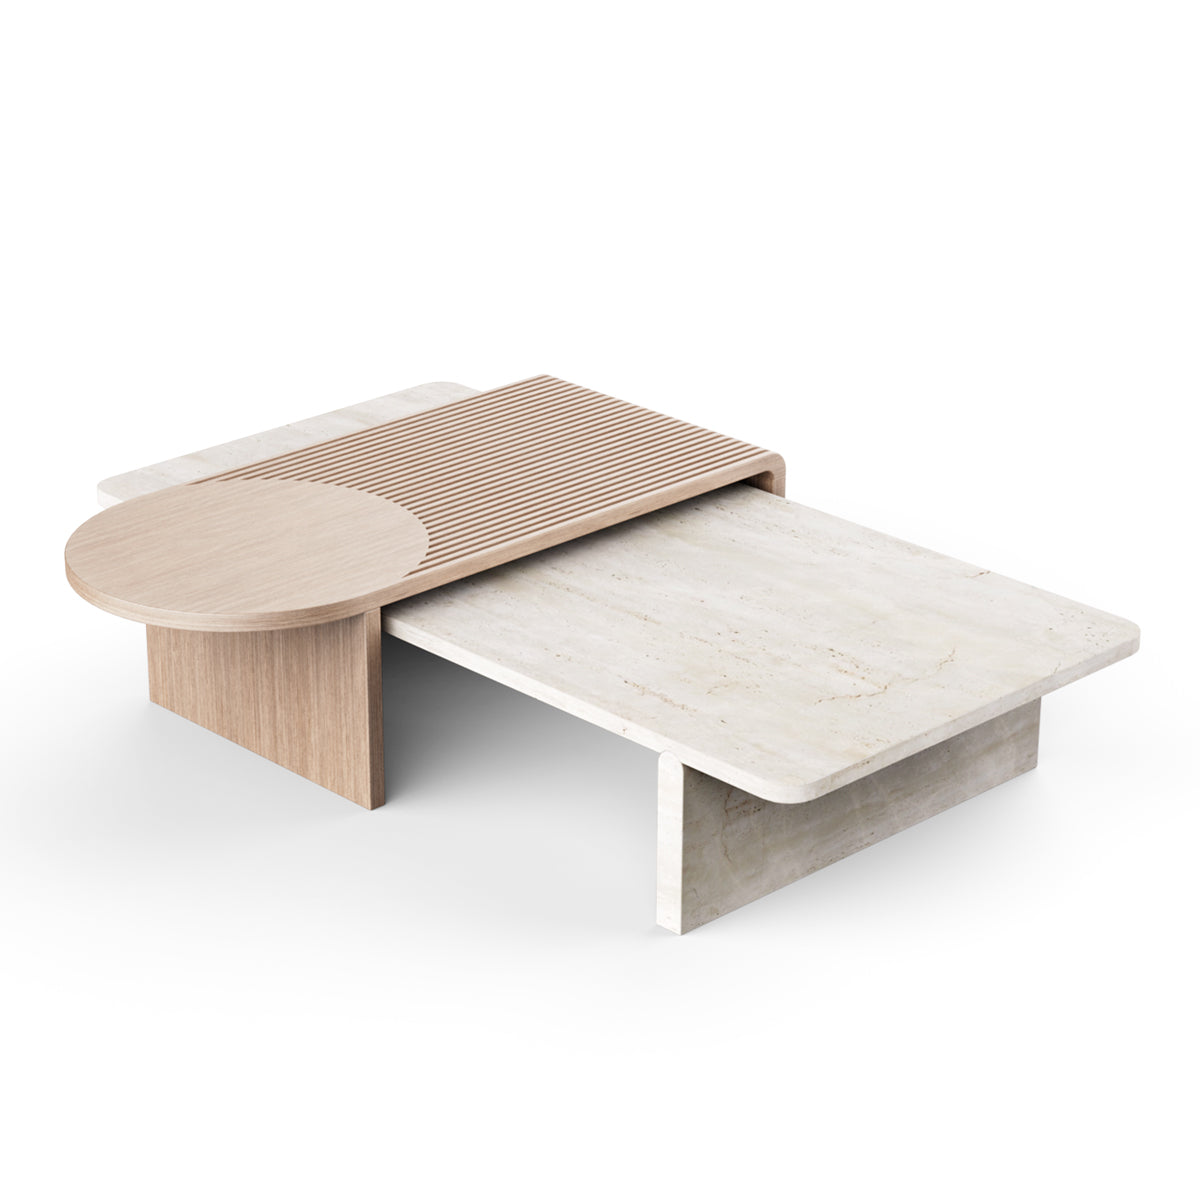 Stick & Stone Centre Table by Dooq | Do Shop